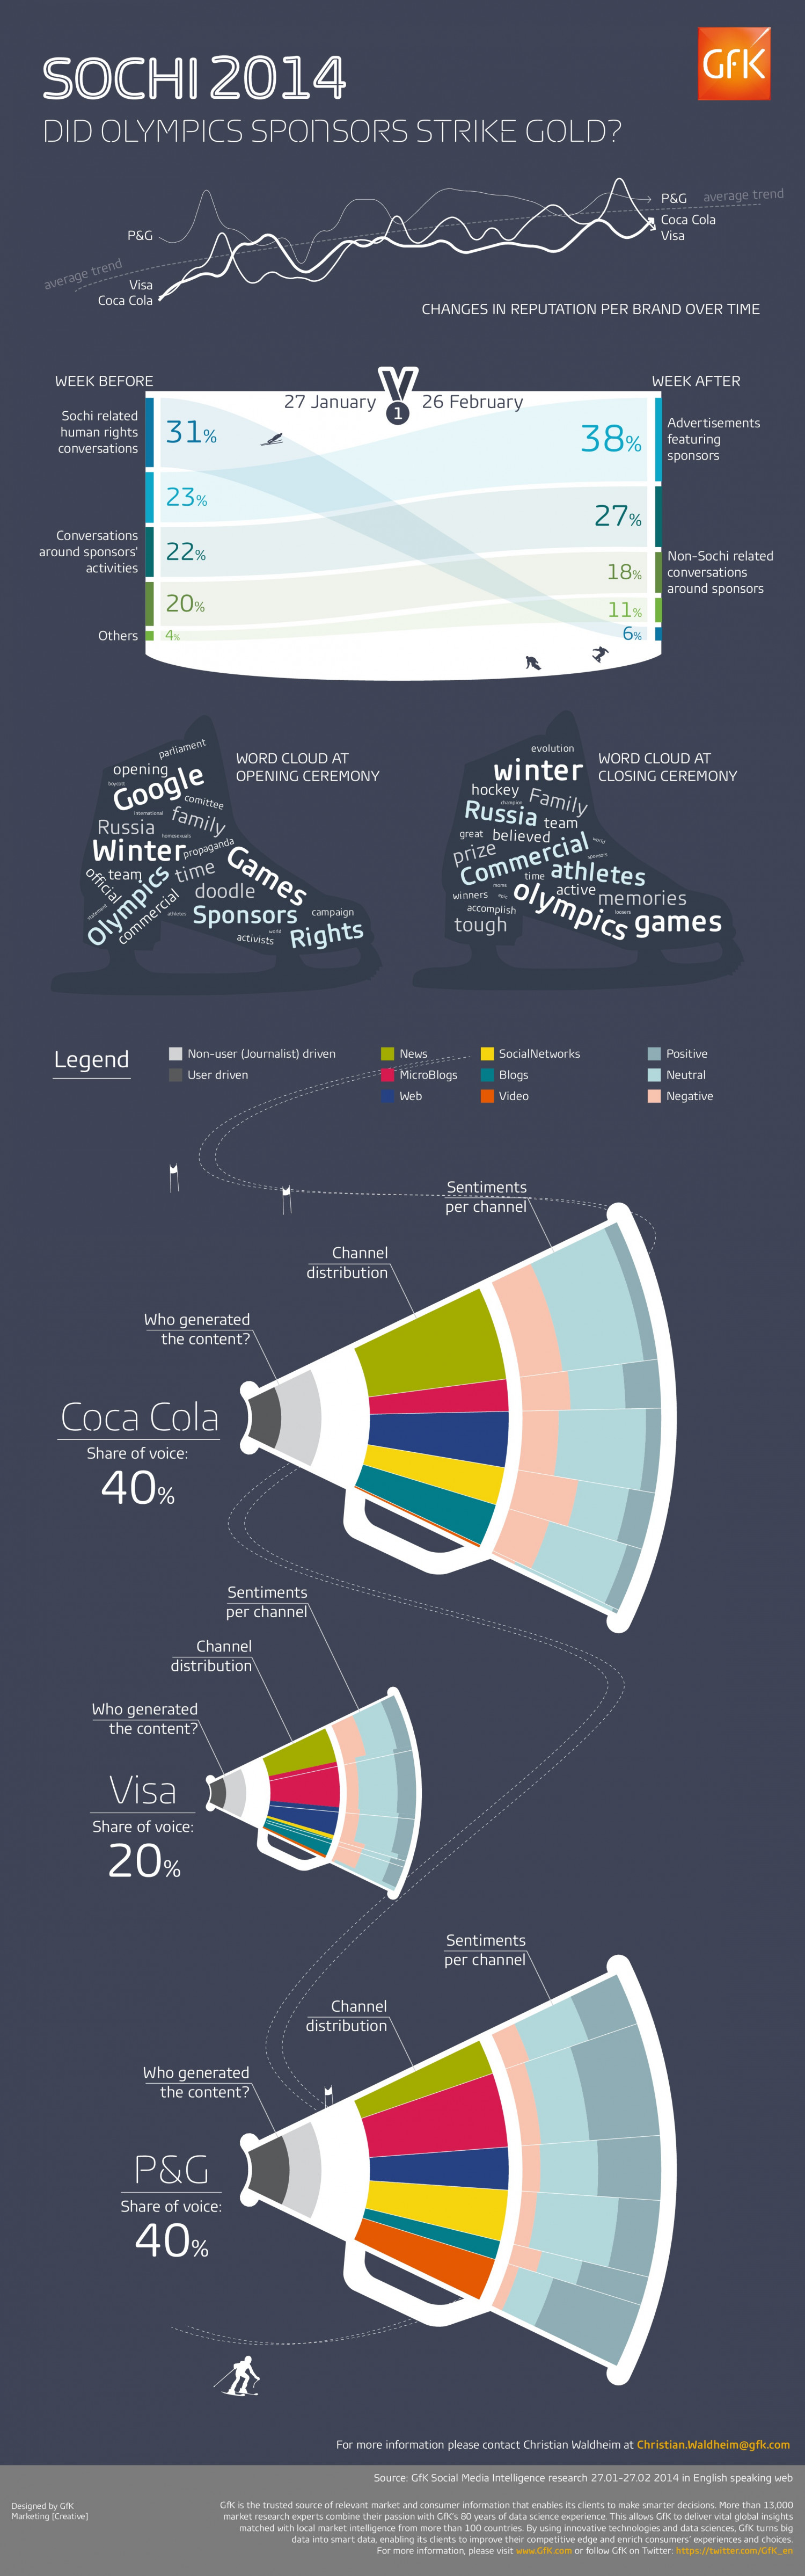 Sochi 2014: Did Olympic Sponsors Strike Gold? Infographic